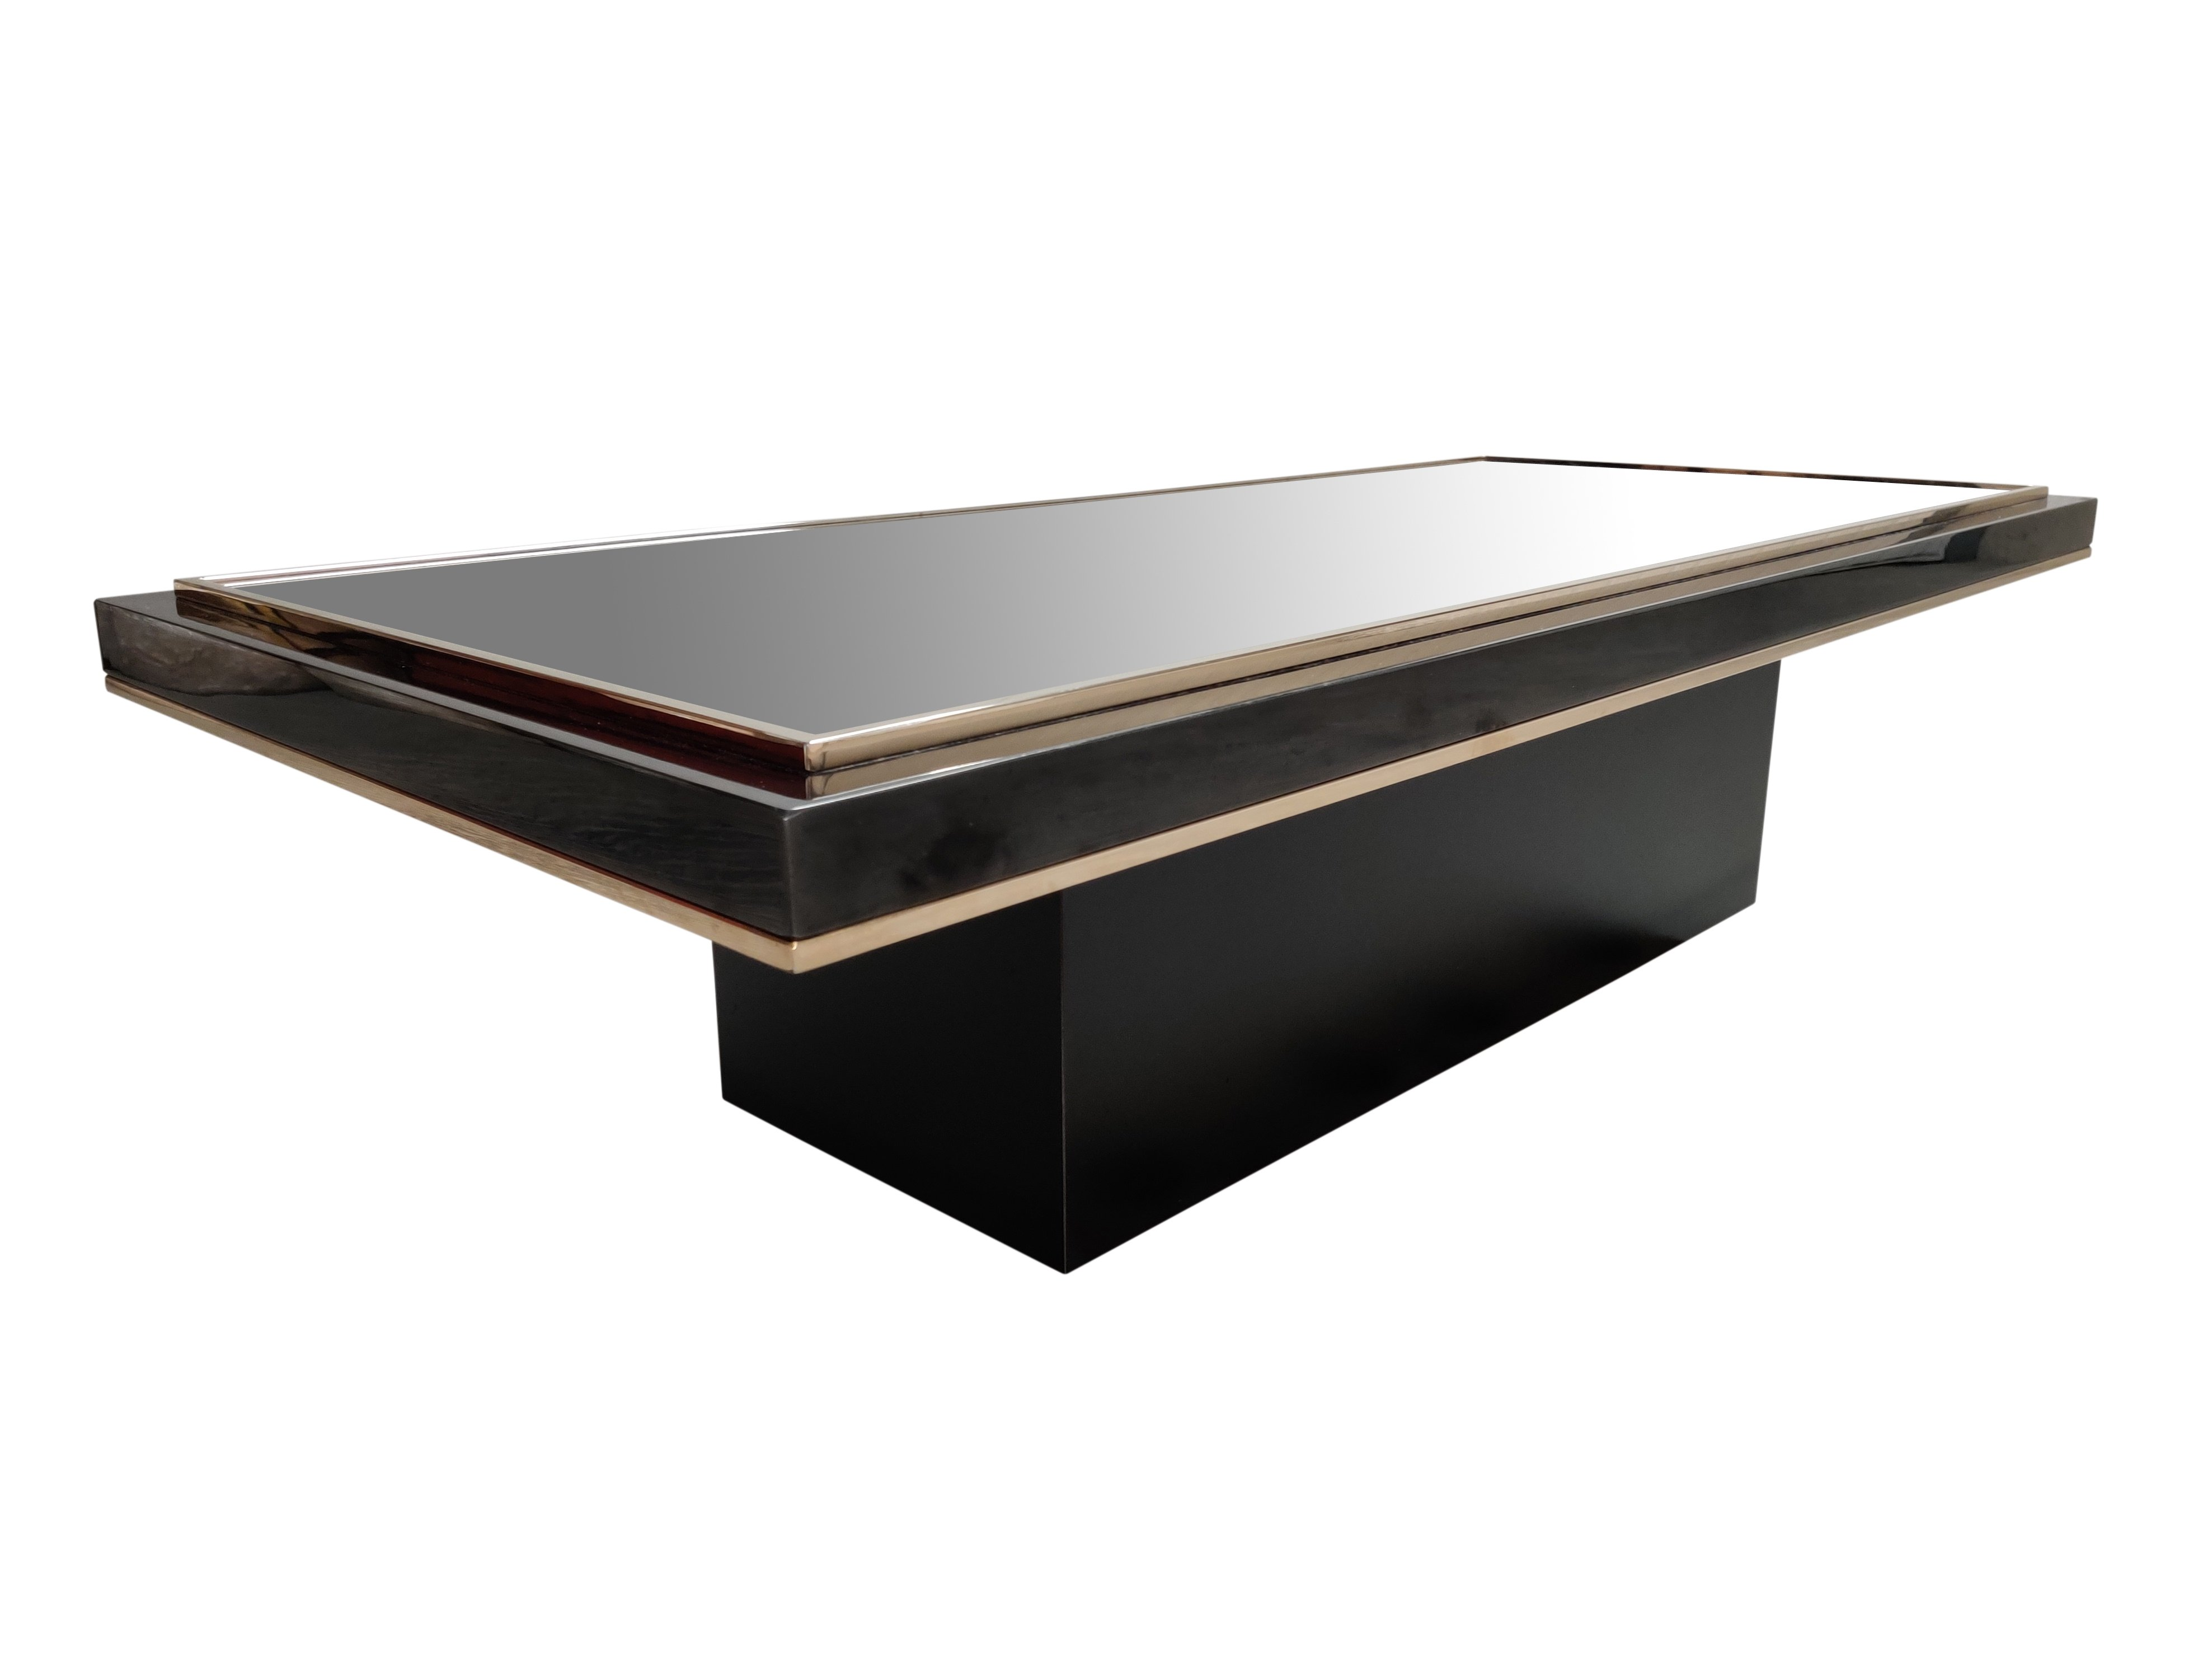 Vintage Black Br Coffee Table By Belgo Chrom 1970s